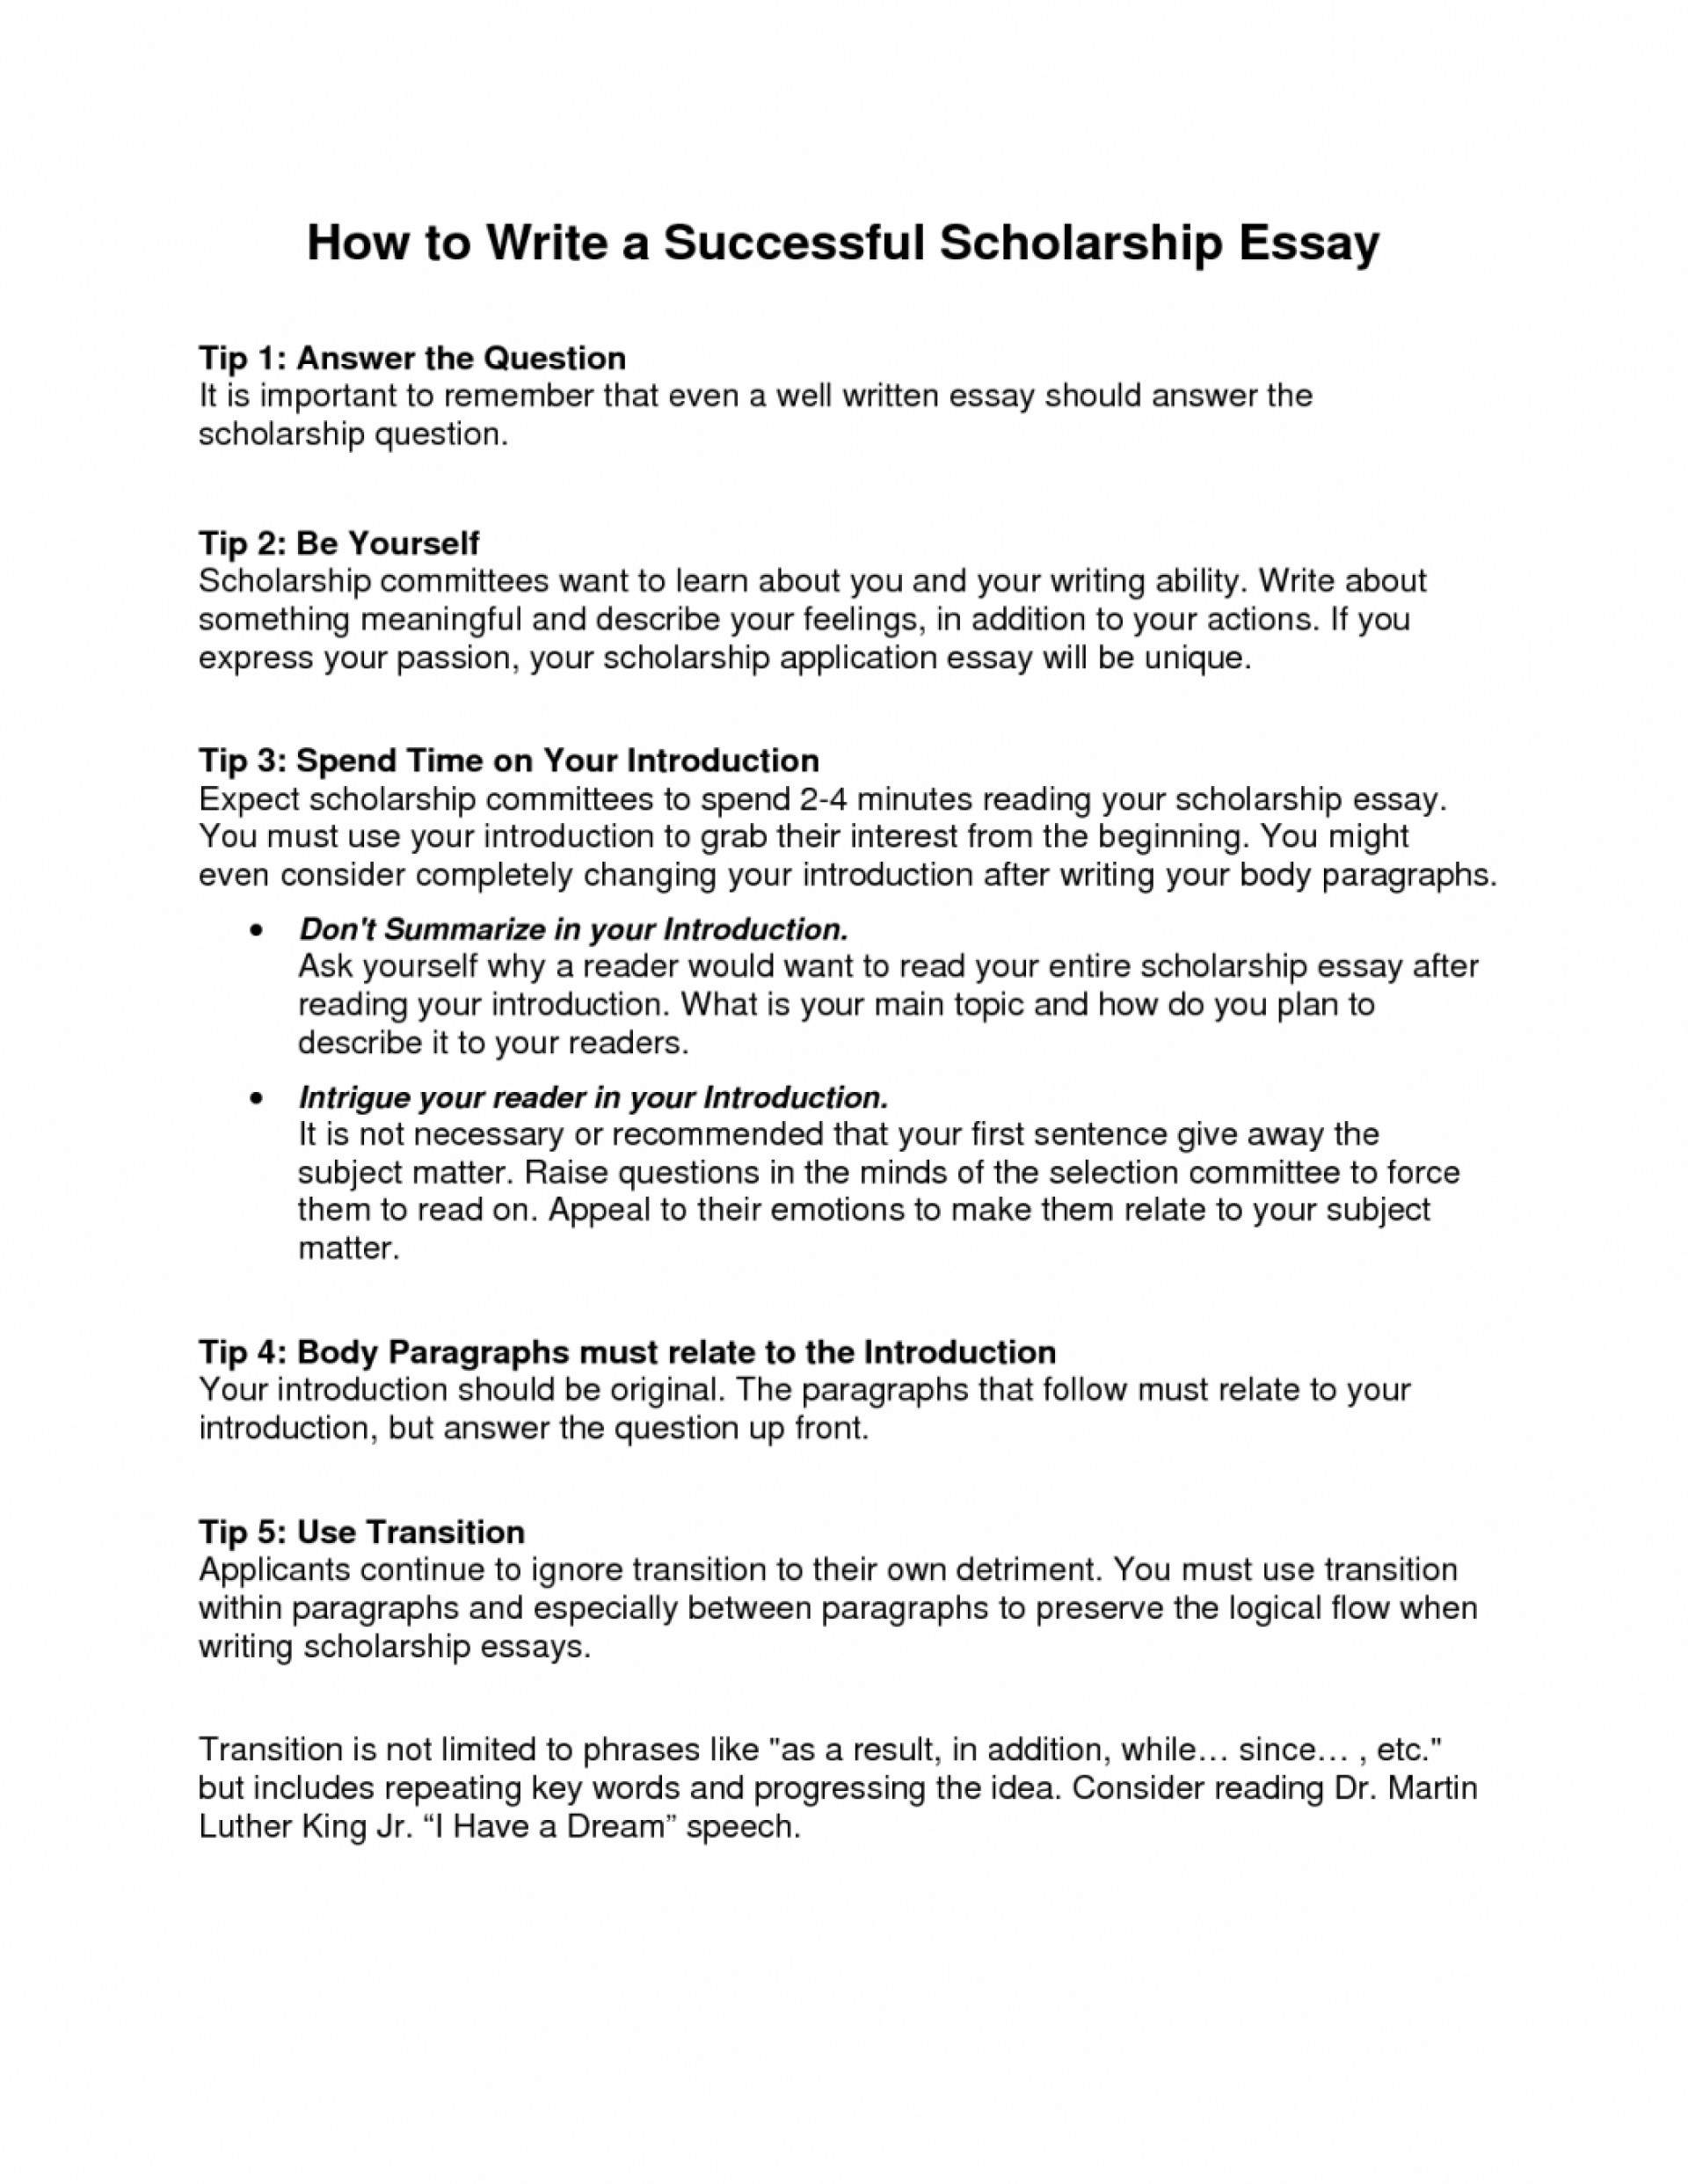 010 How To Write Perfect Essay Example Essays Writing About Yourself Make Online The Wftbt Introduction For Sat University Conclusion Outline Scholarship Pdf Remarkable A College Good Admissions Ged Test 1920